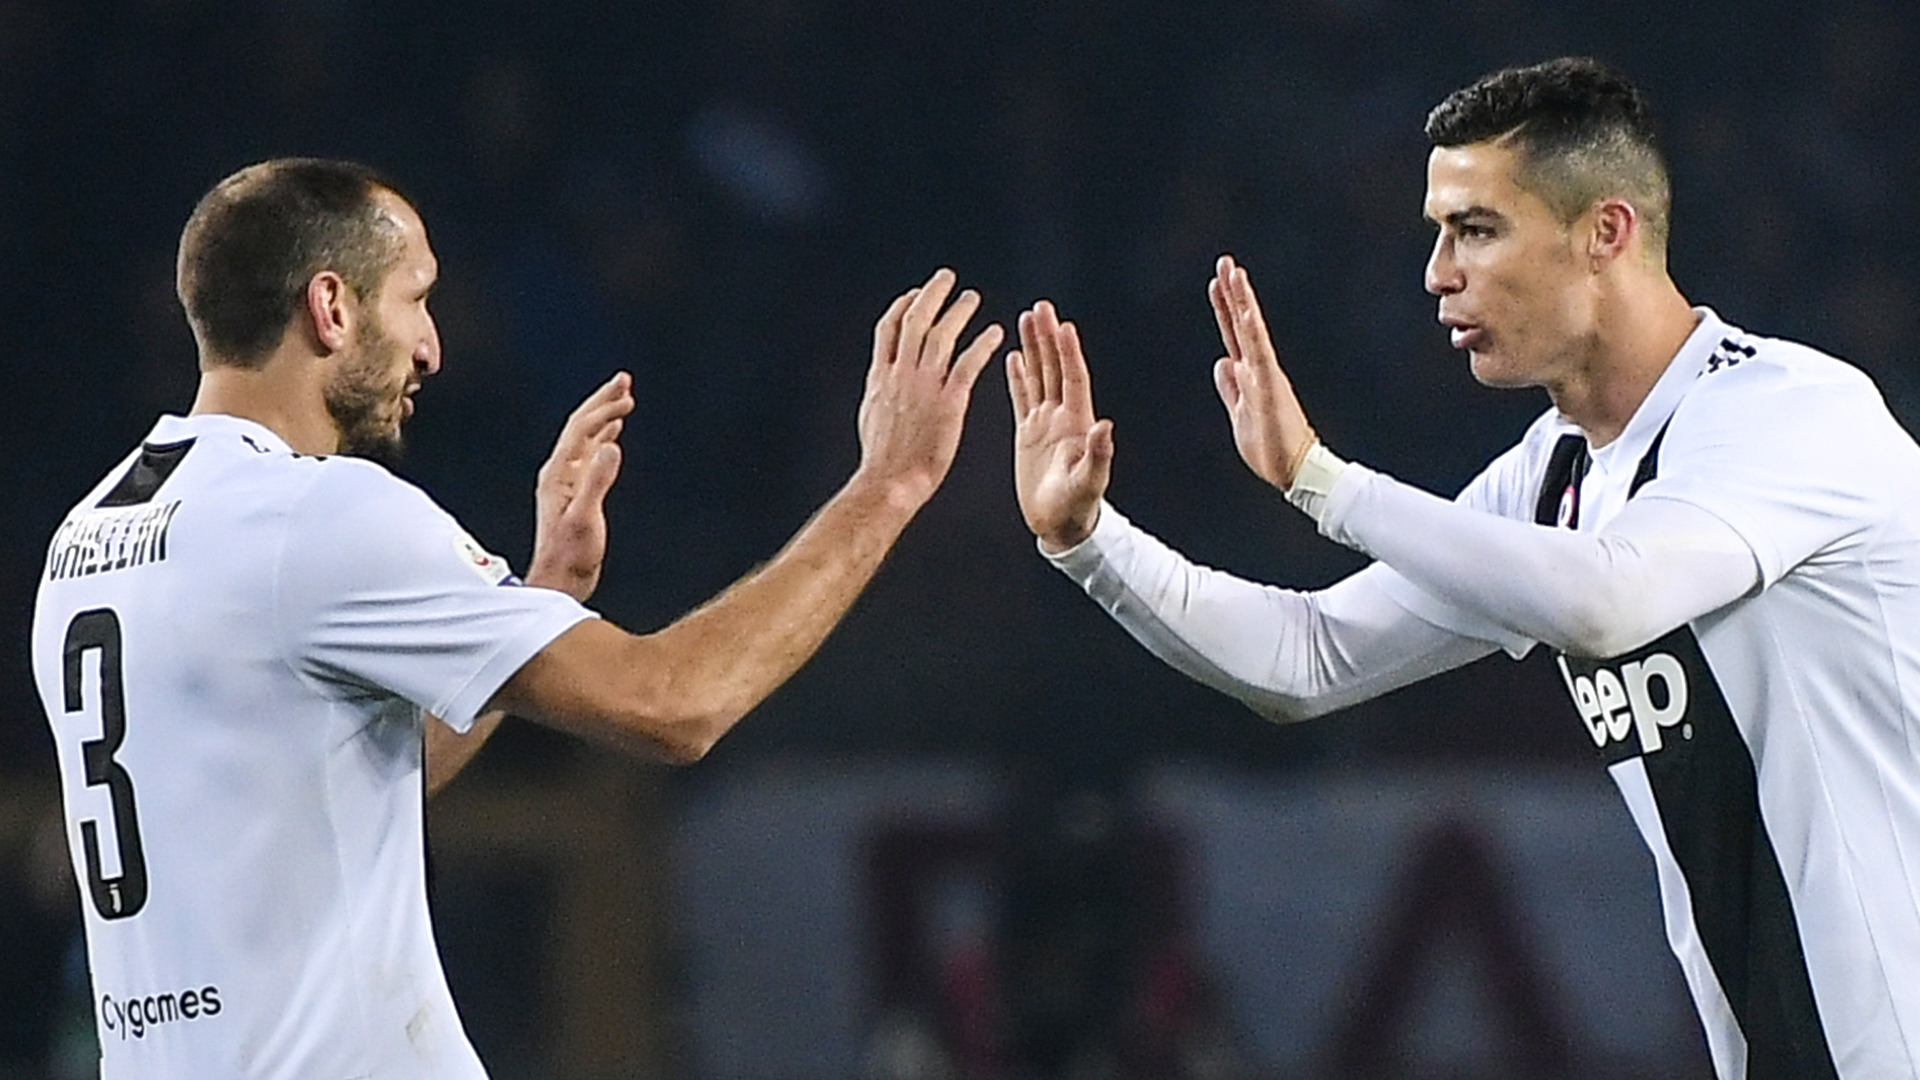 'He scored a lot against us' - Chiellini delighted to be on the same side as 'champion' Ronaldo